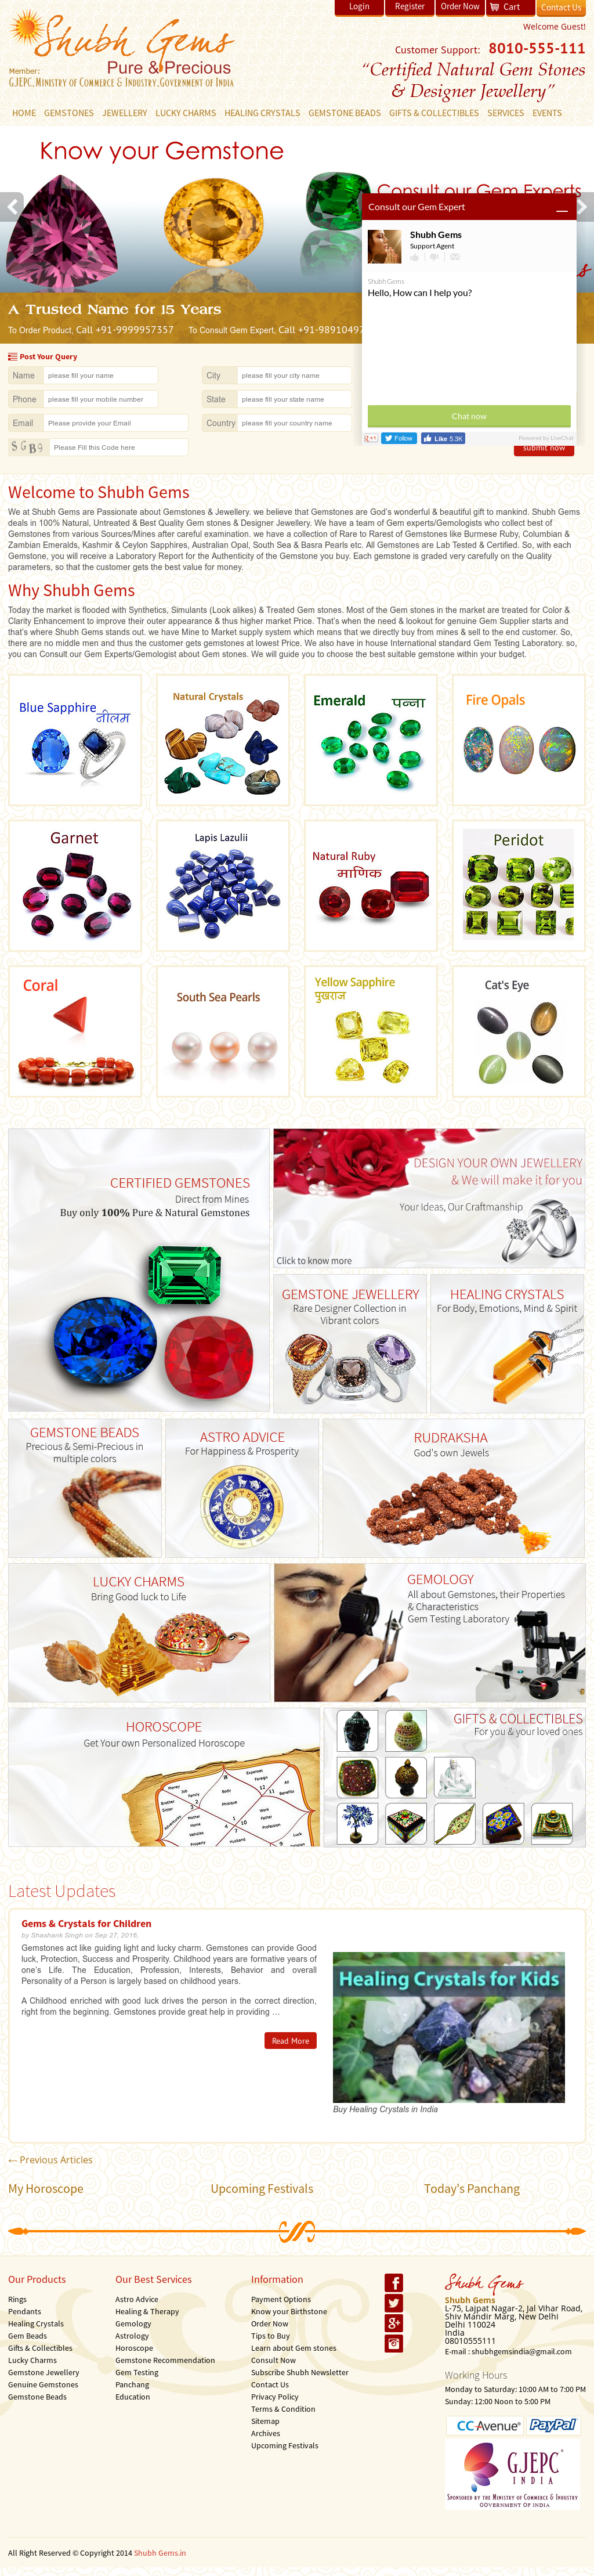 Shubh Gems Competitors, Revenue and Employees - Owler